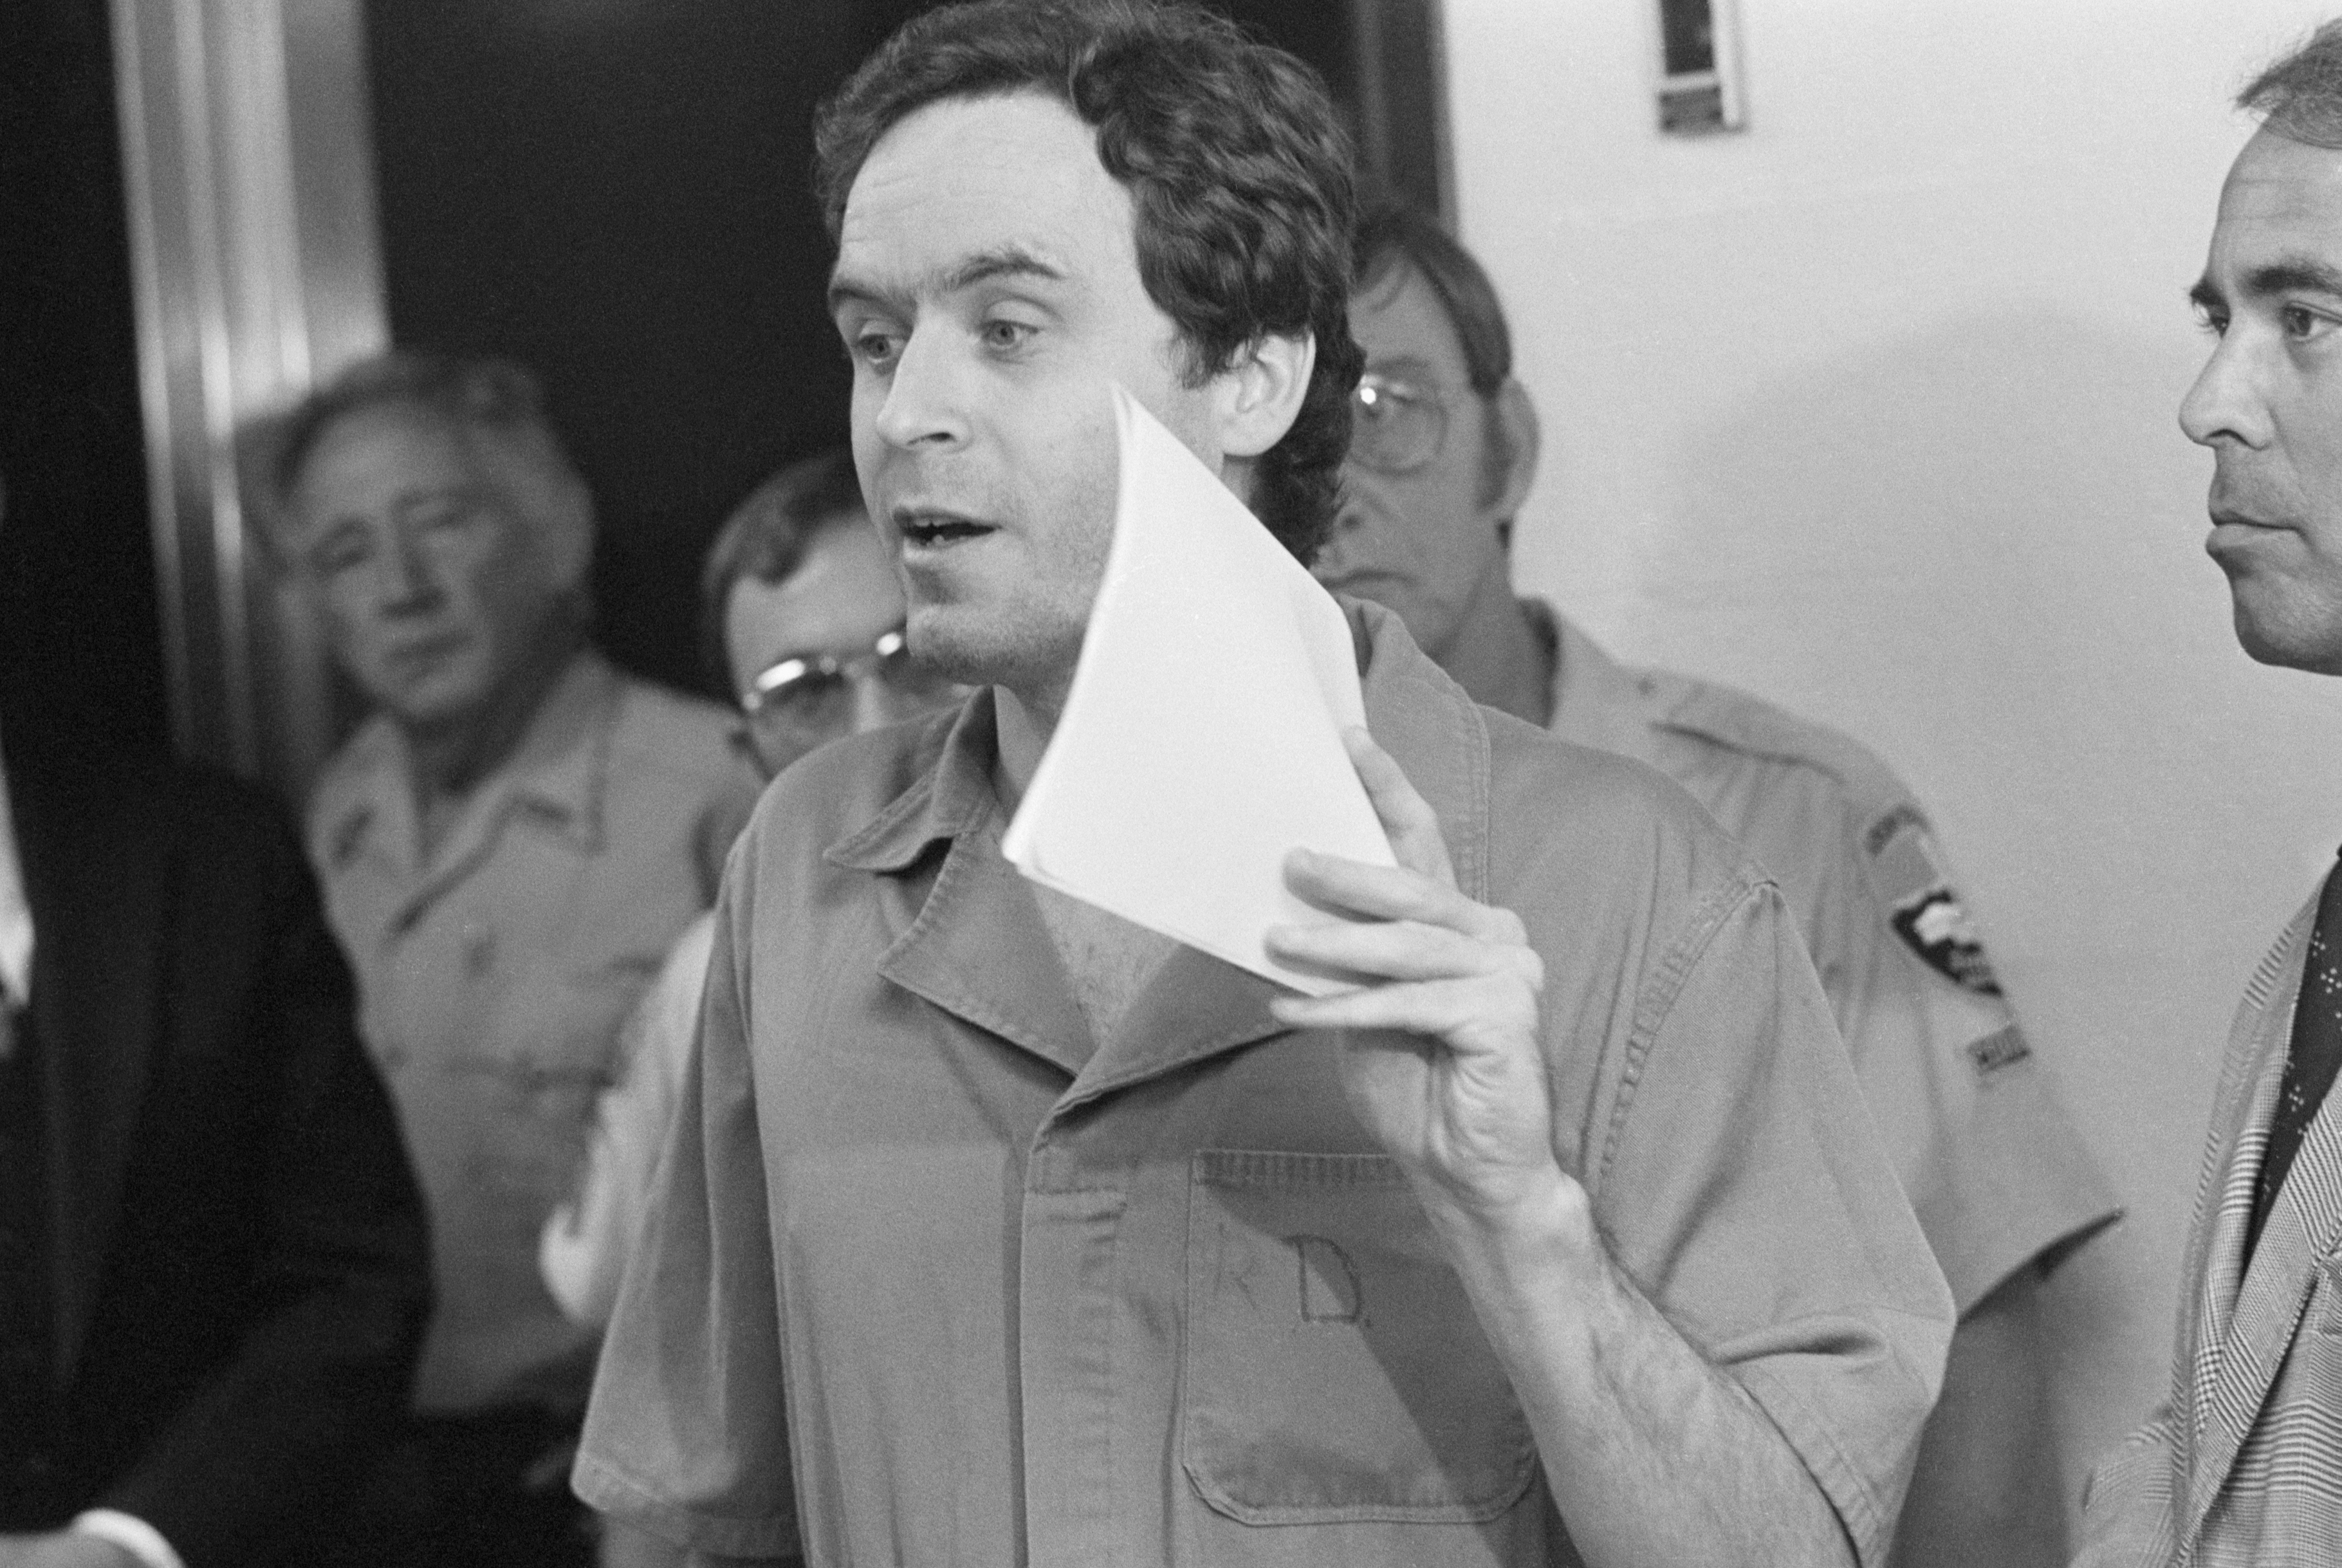 Ted Bundy's Missing Daughter Found? She Is 'Kind and